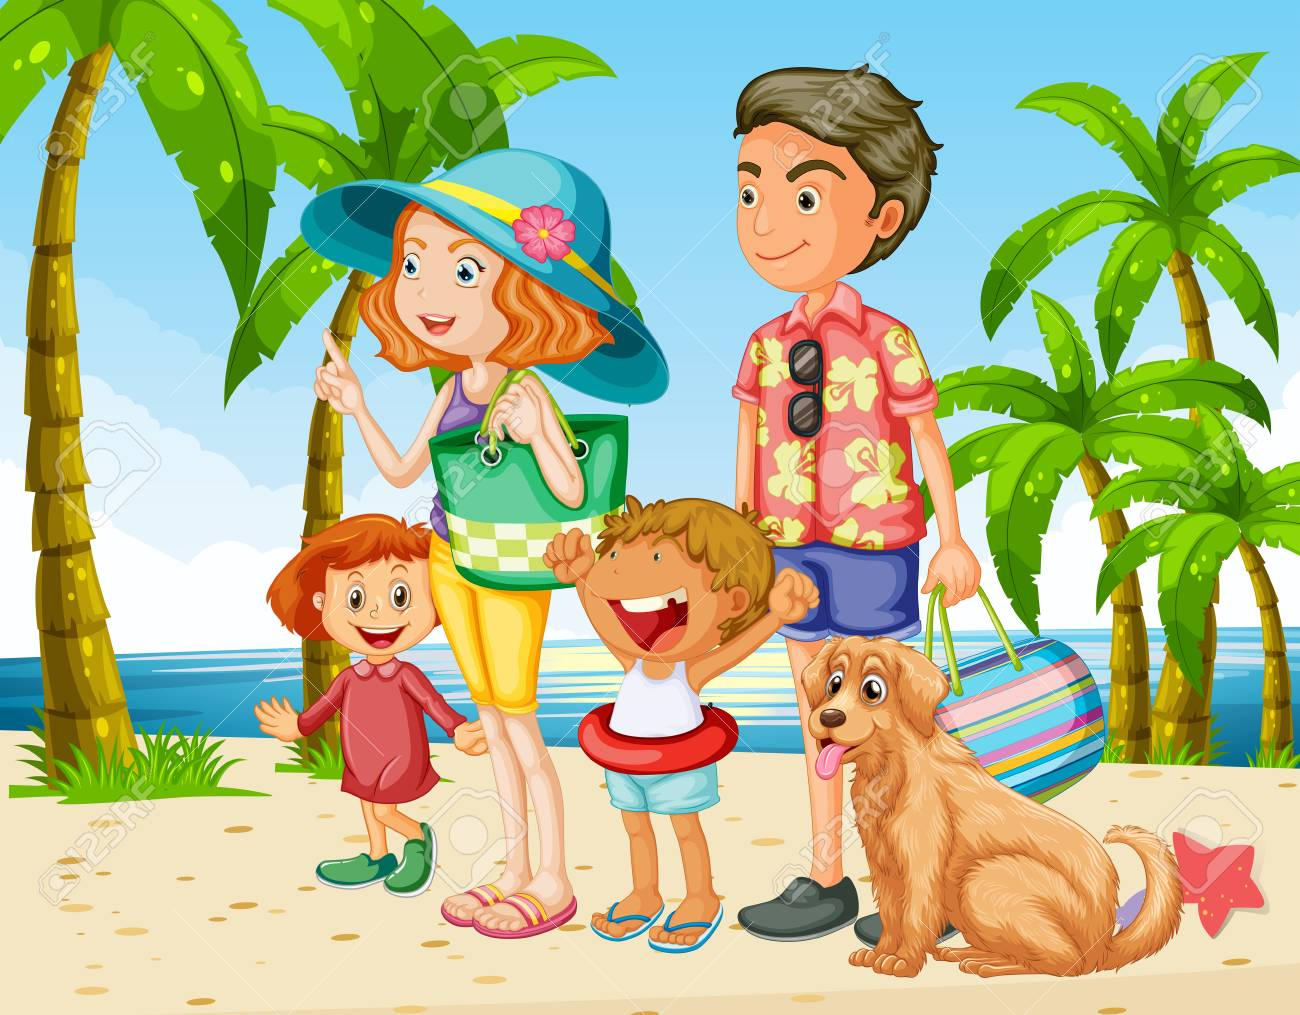 Summer holiday with family on the beach illustration.